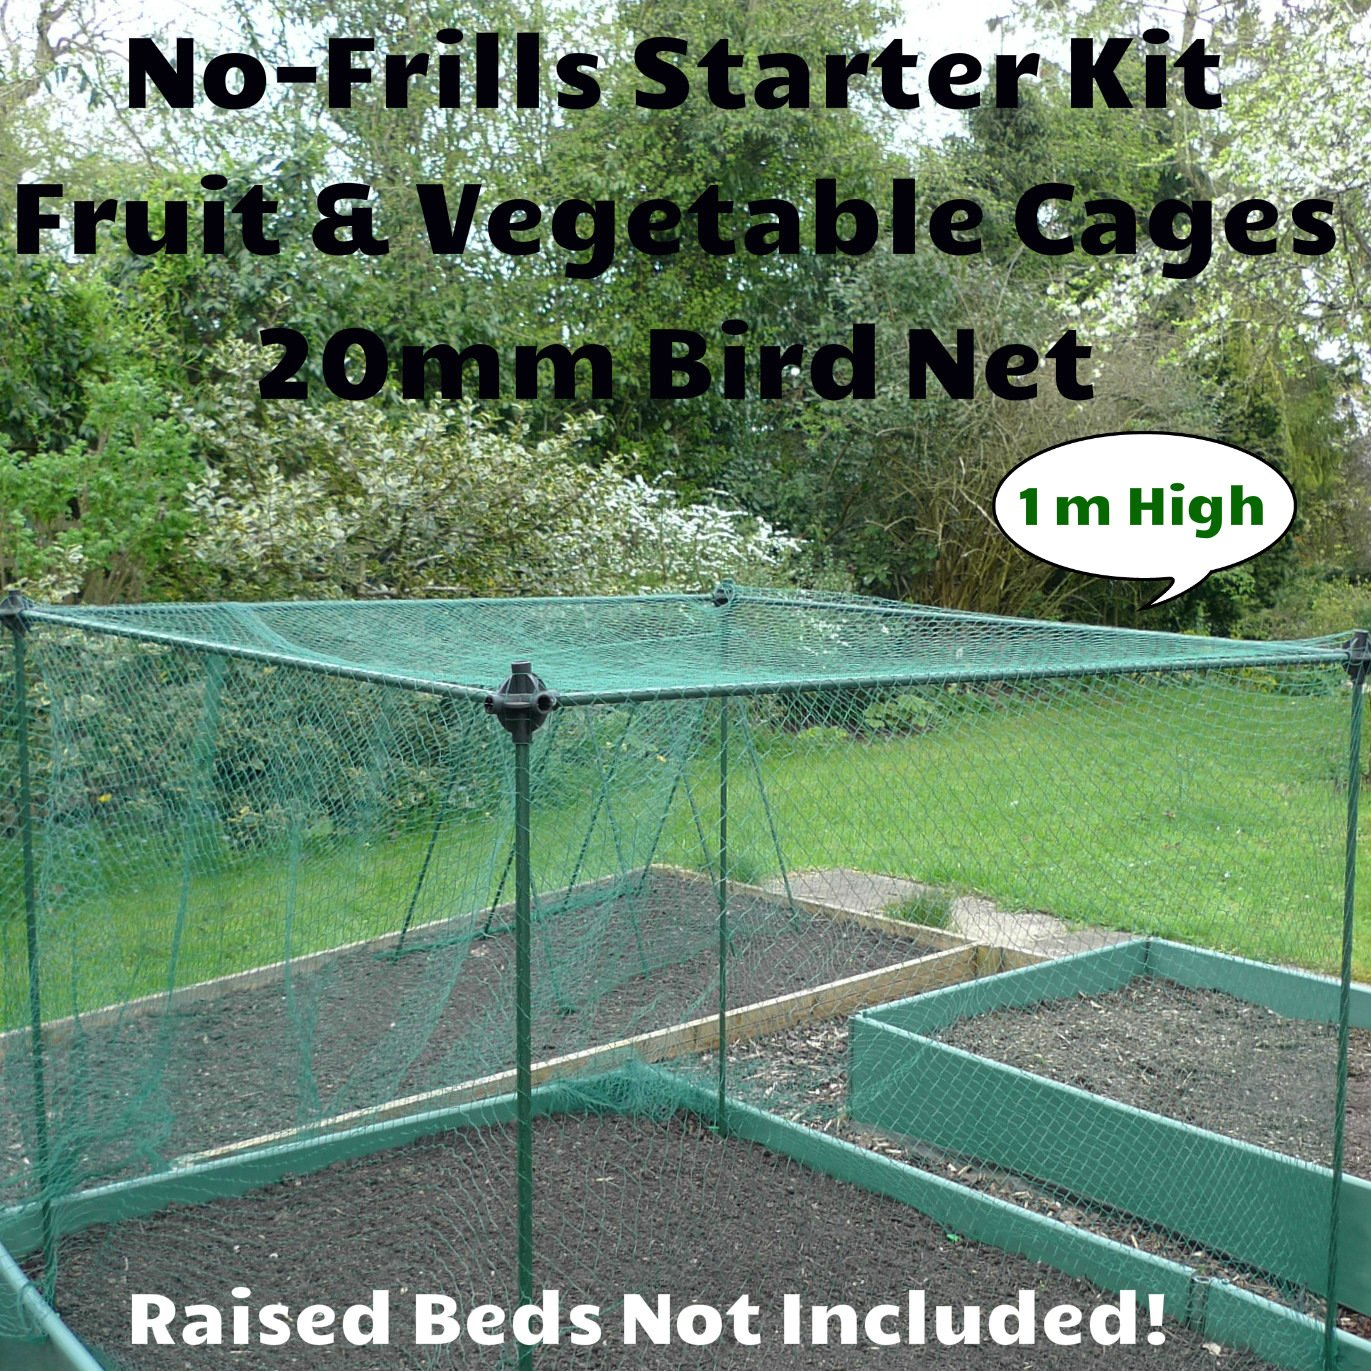 1m / 3ft High - No Frills Netted Fruit and Vegetable Veg Crop Cage Kit - Plant Stake with 20mm Bird Netting (1.2m x 1.2m x 1m High) GardenSkill